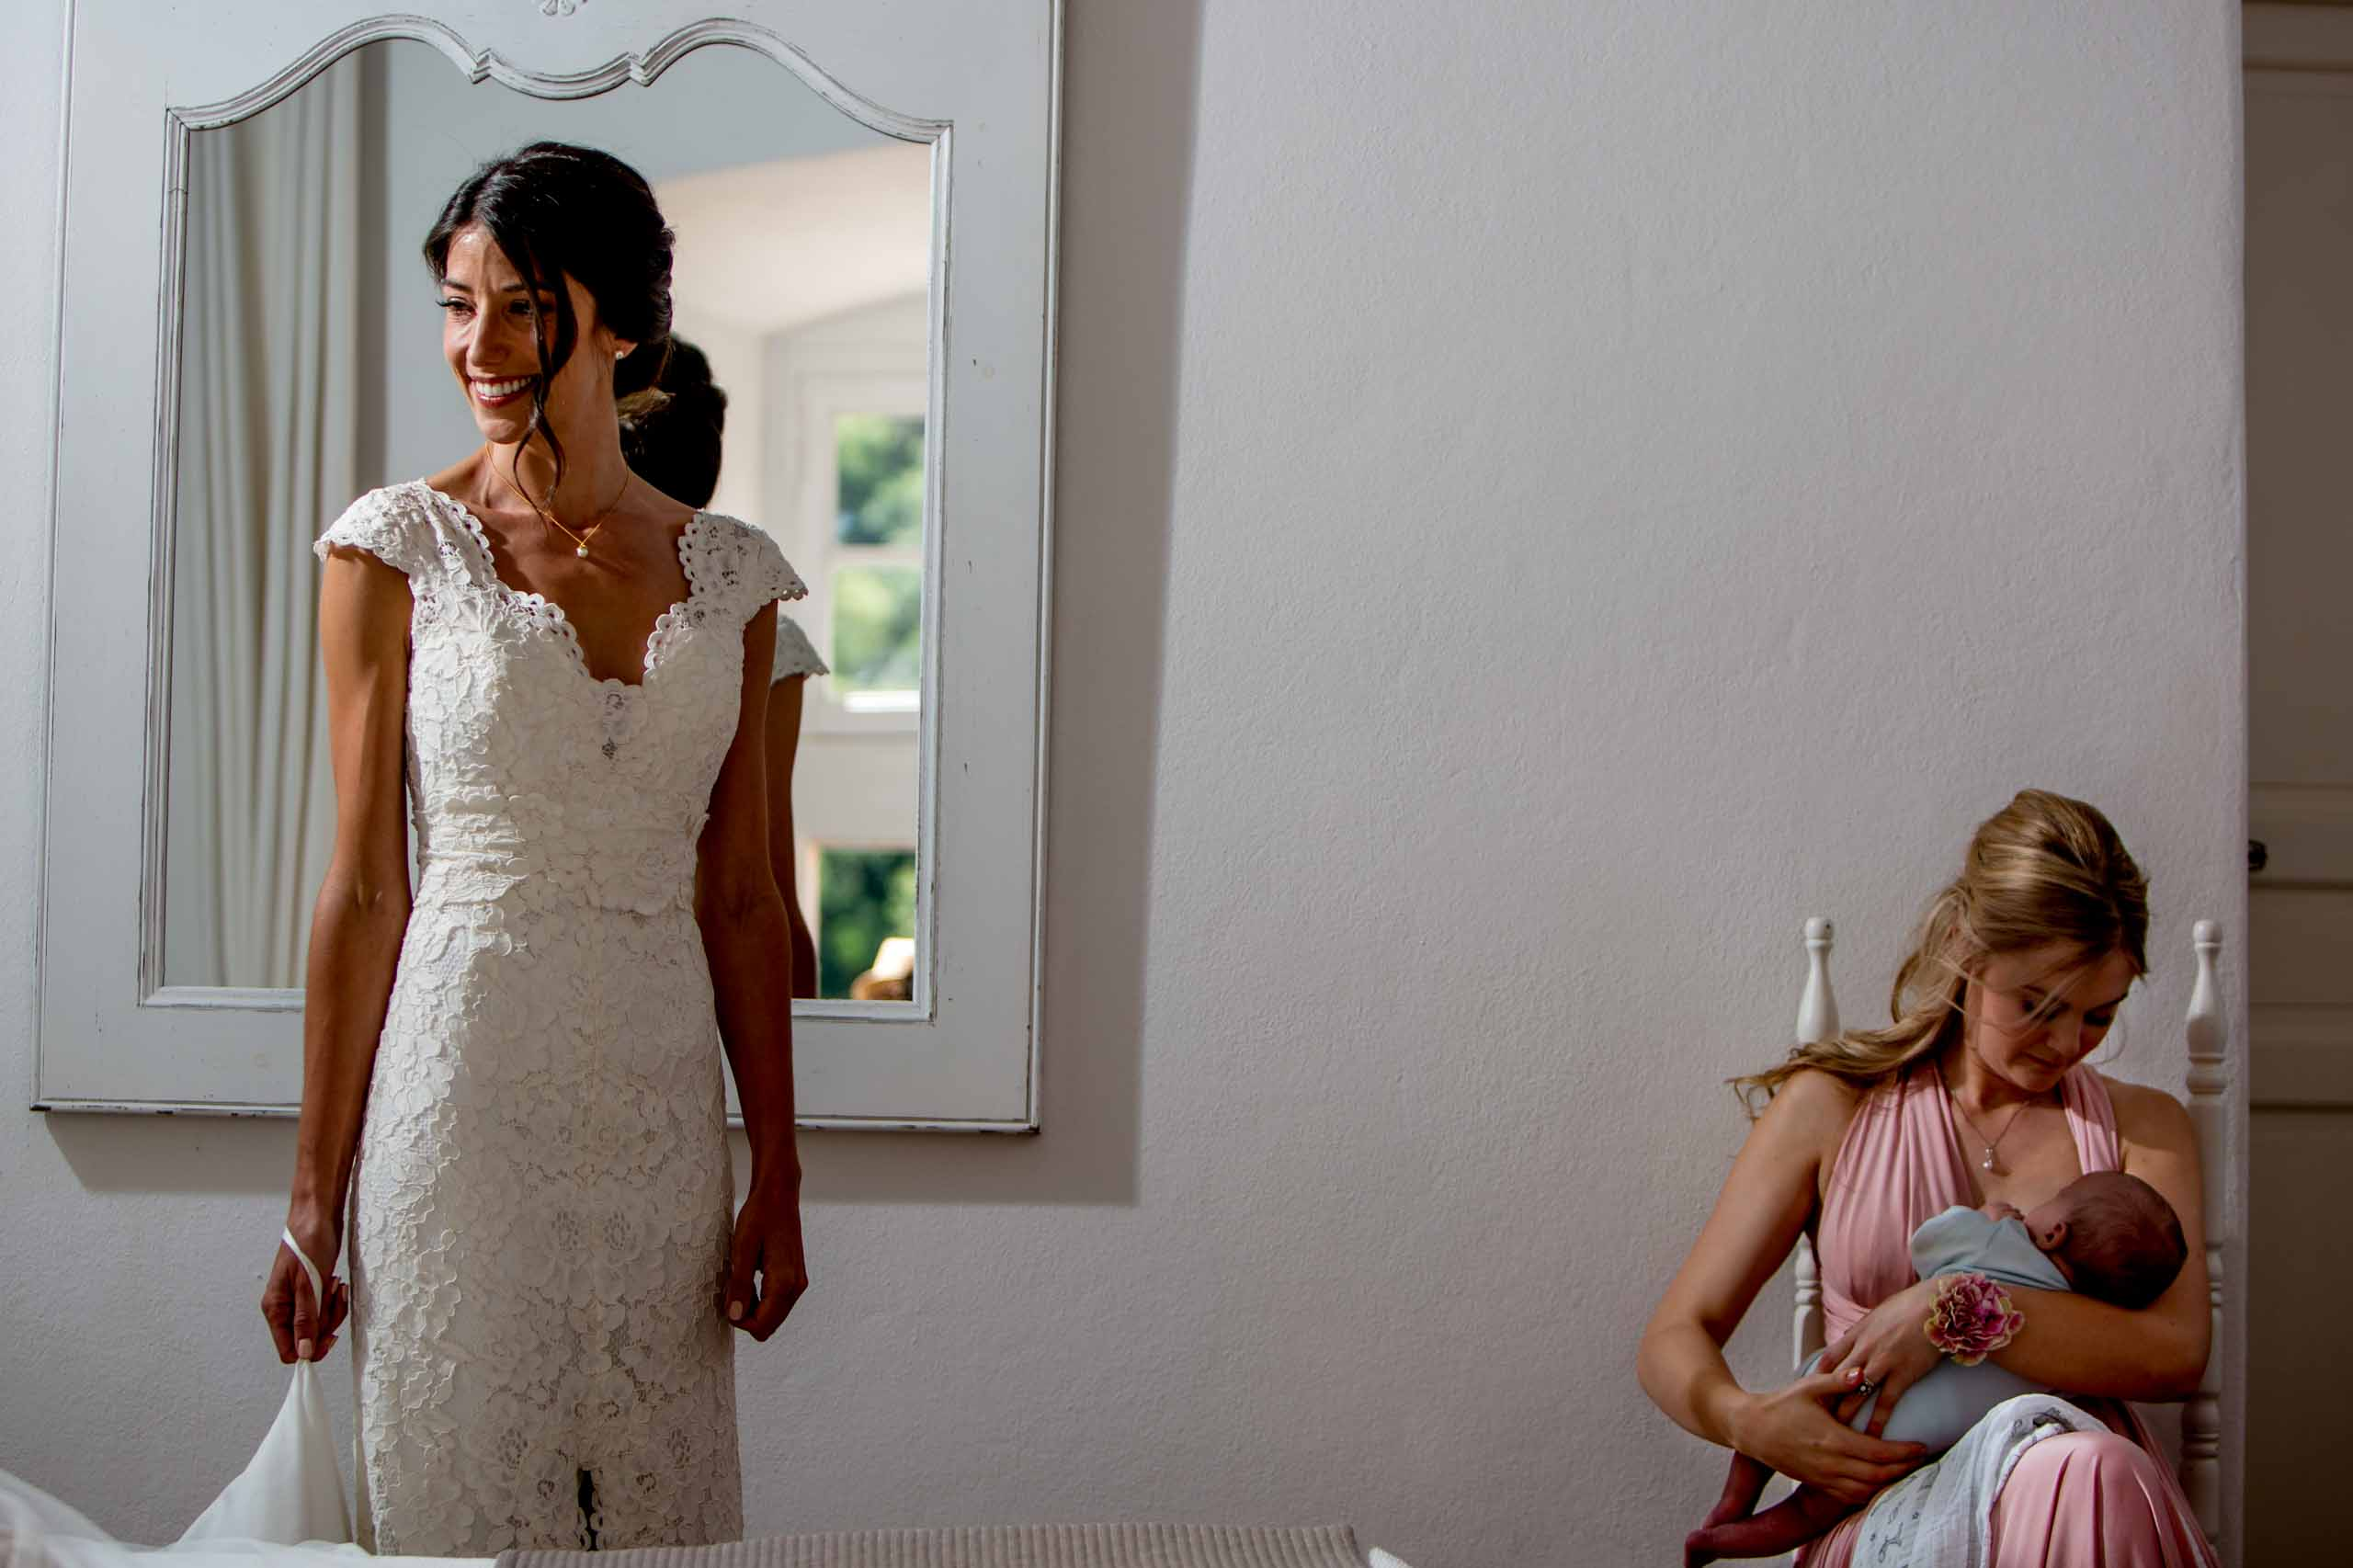 Bride getting ready for her Chateau Zen wedding in the South of France near Montepelier.